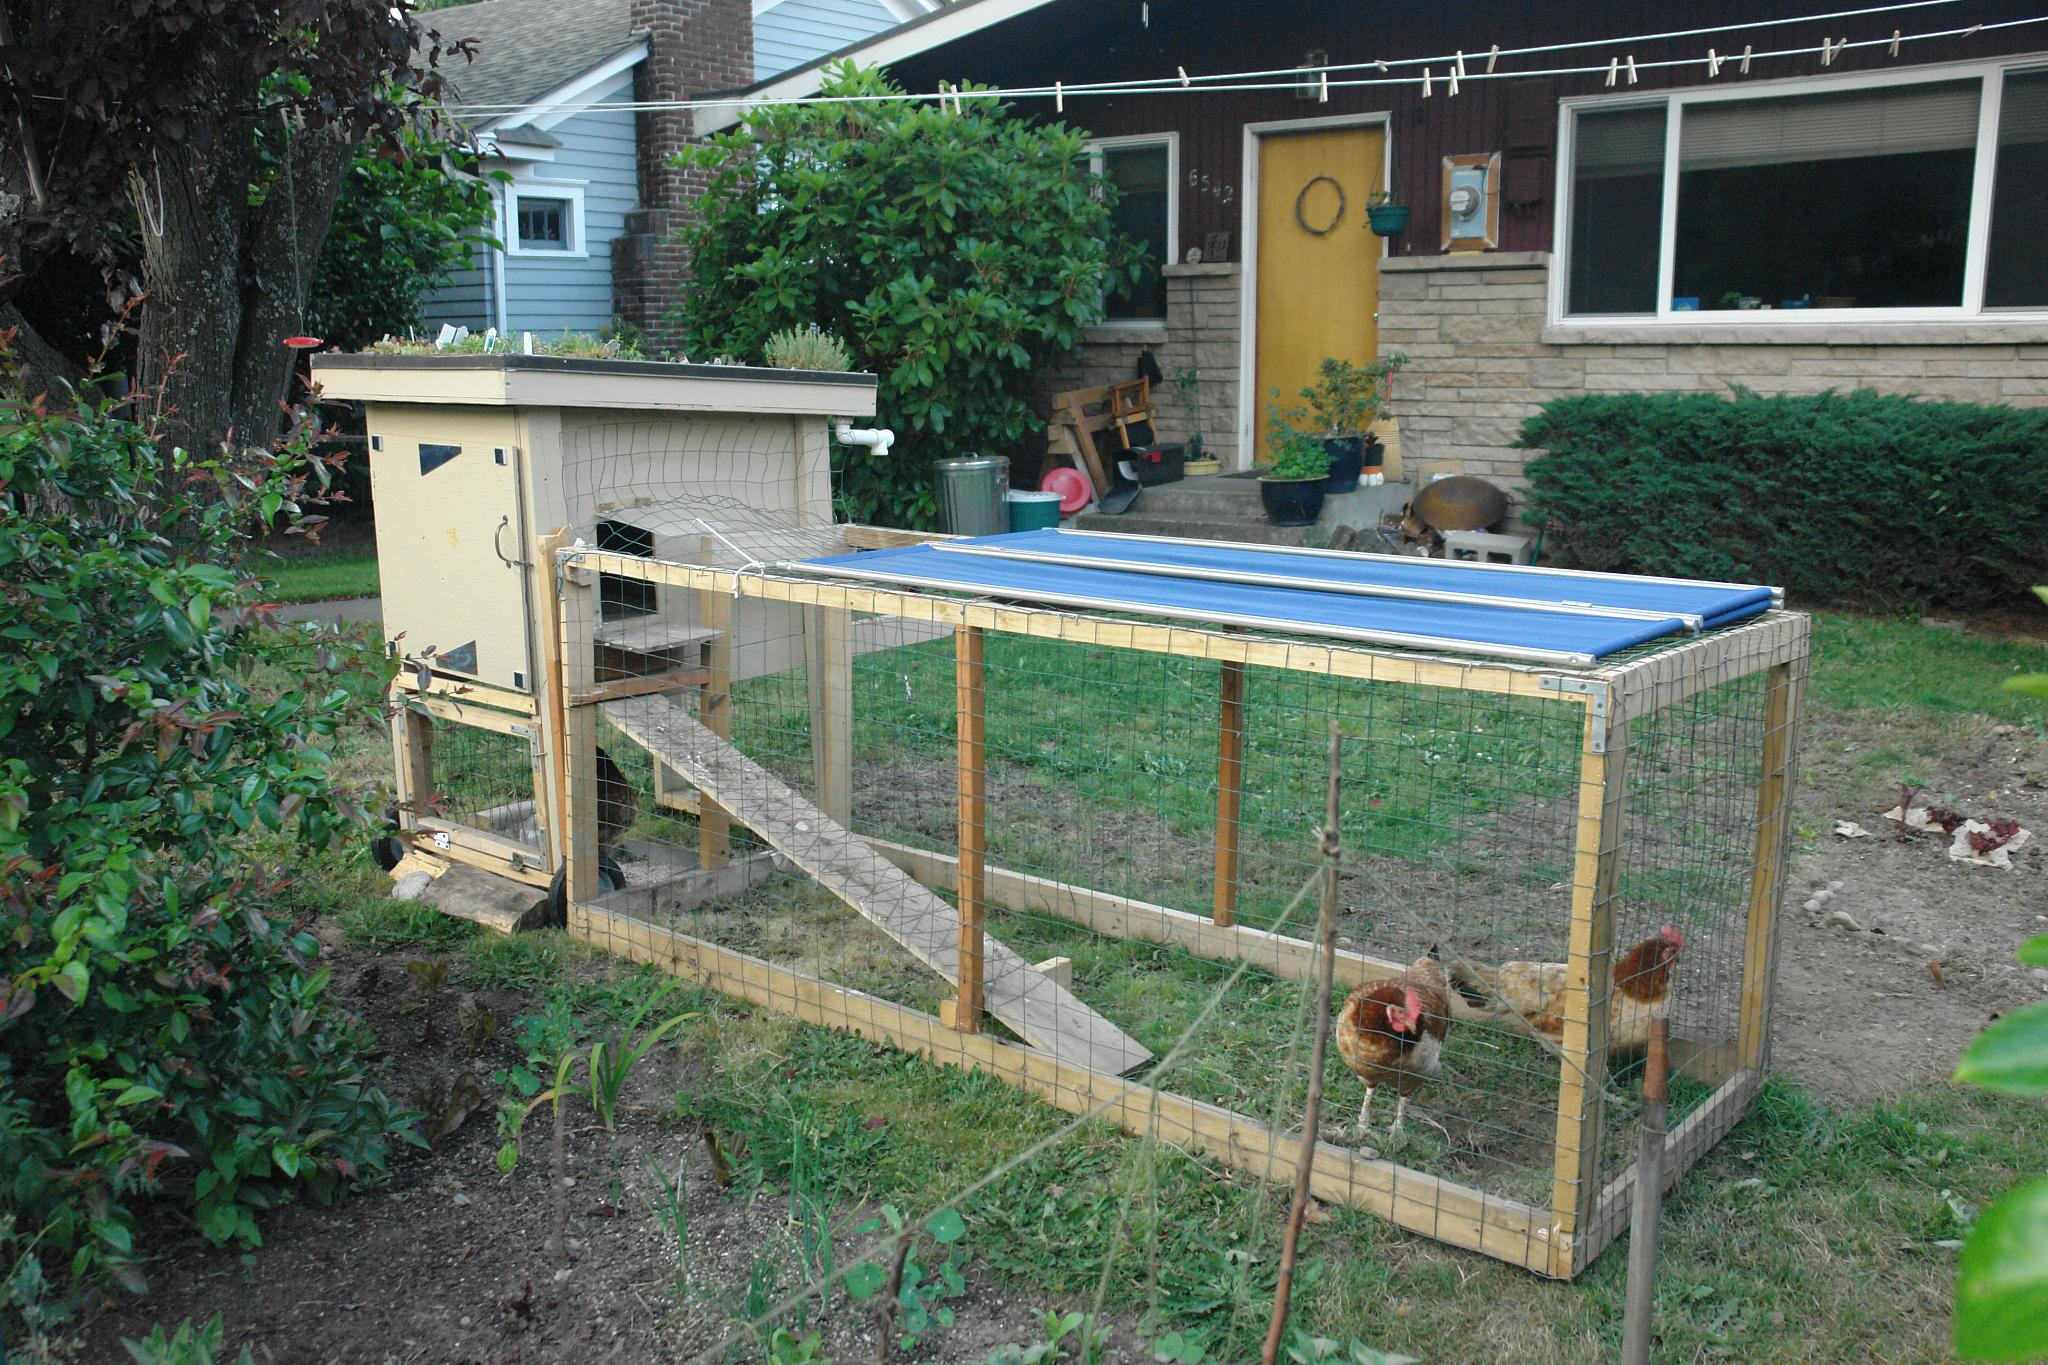 Backyard Chicken Coup file:backyard chicken coop with green roof - wikimedia commons